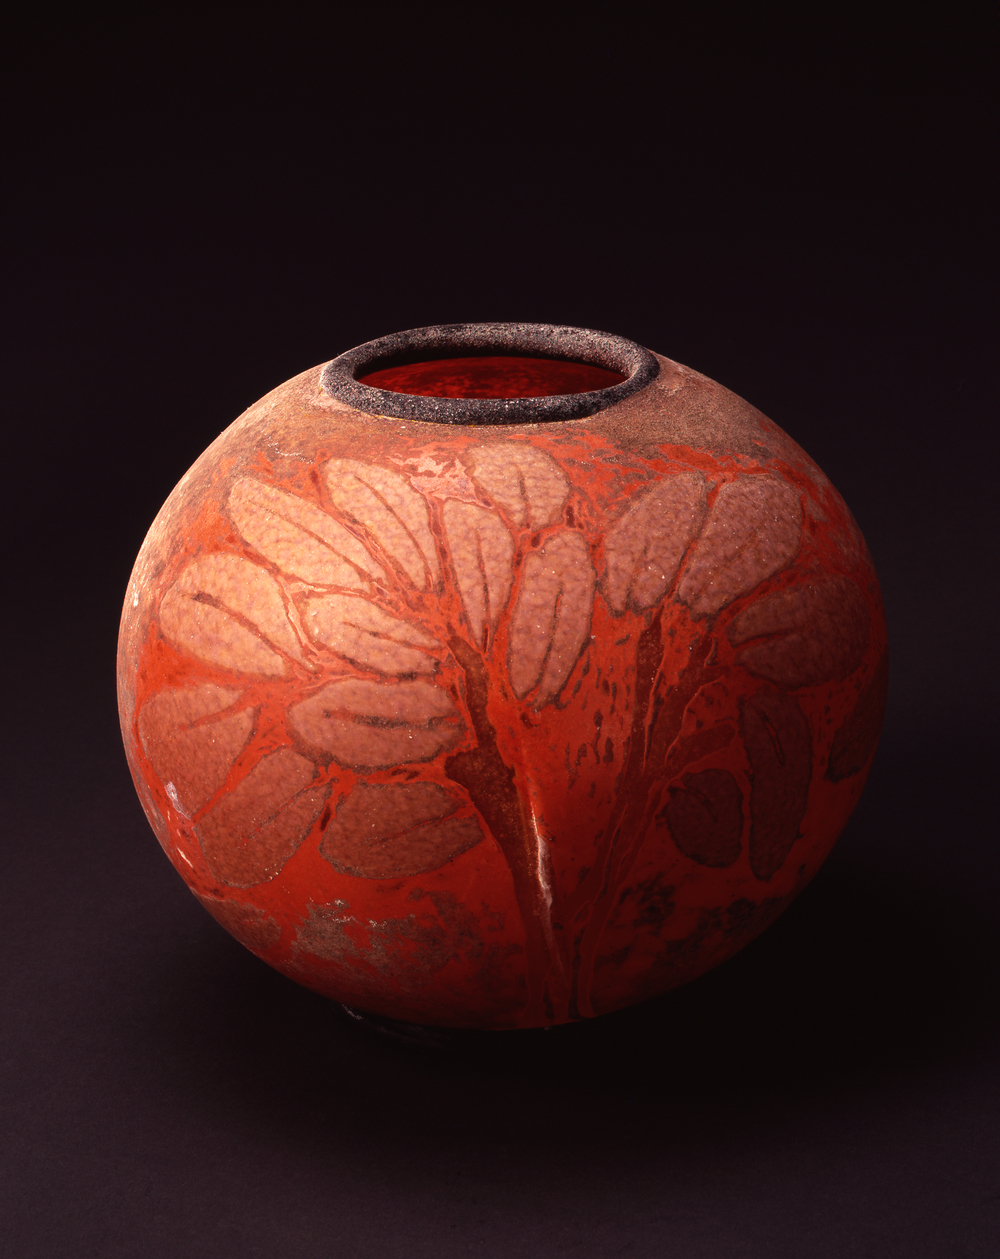 William Morris,  Globe Vessel with Leaves  (2004, glass, 8 1/4 x 9 3/4 x 9 3/4 inches), WM.23